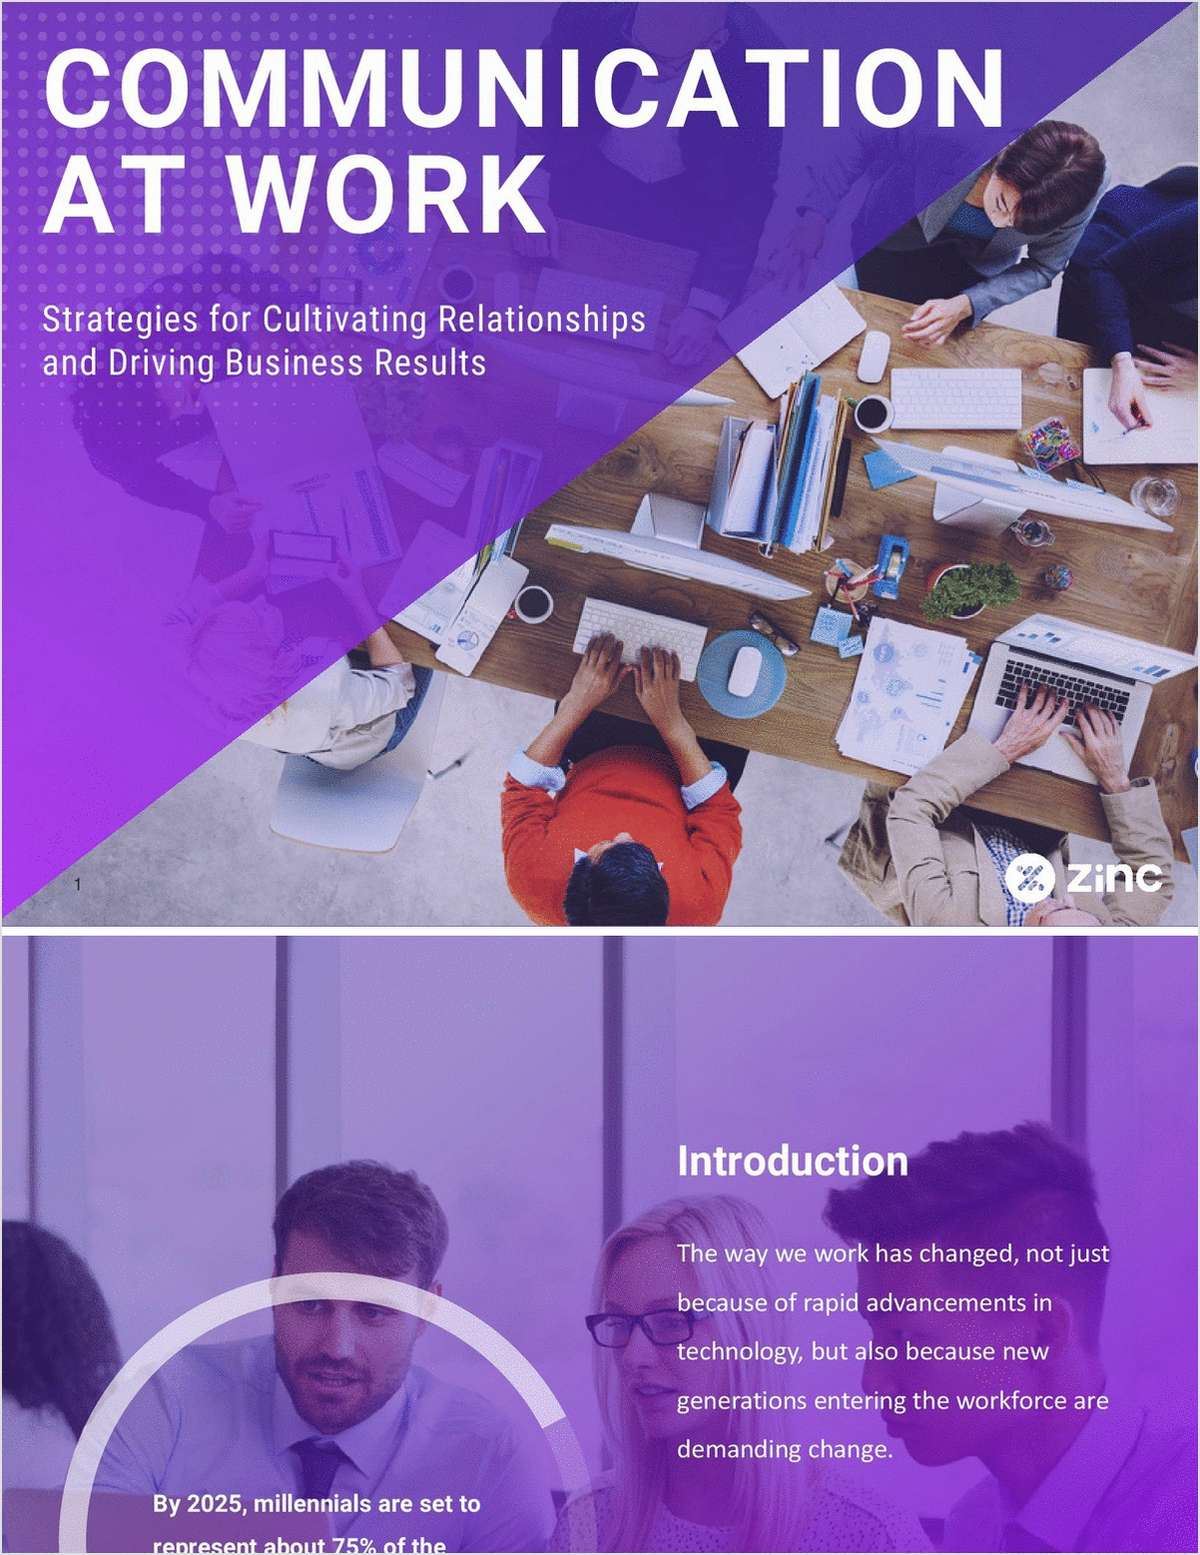 Communication At Work: Strategies for Cultivating Relationships and Driving Business Results